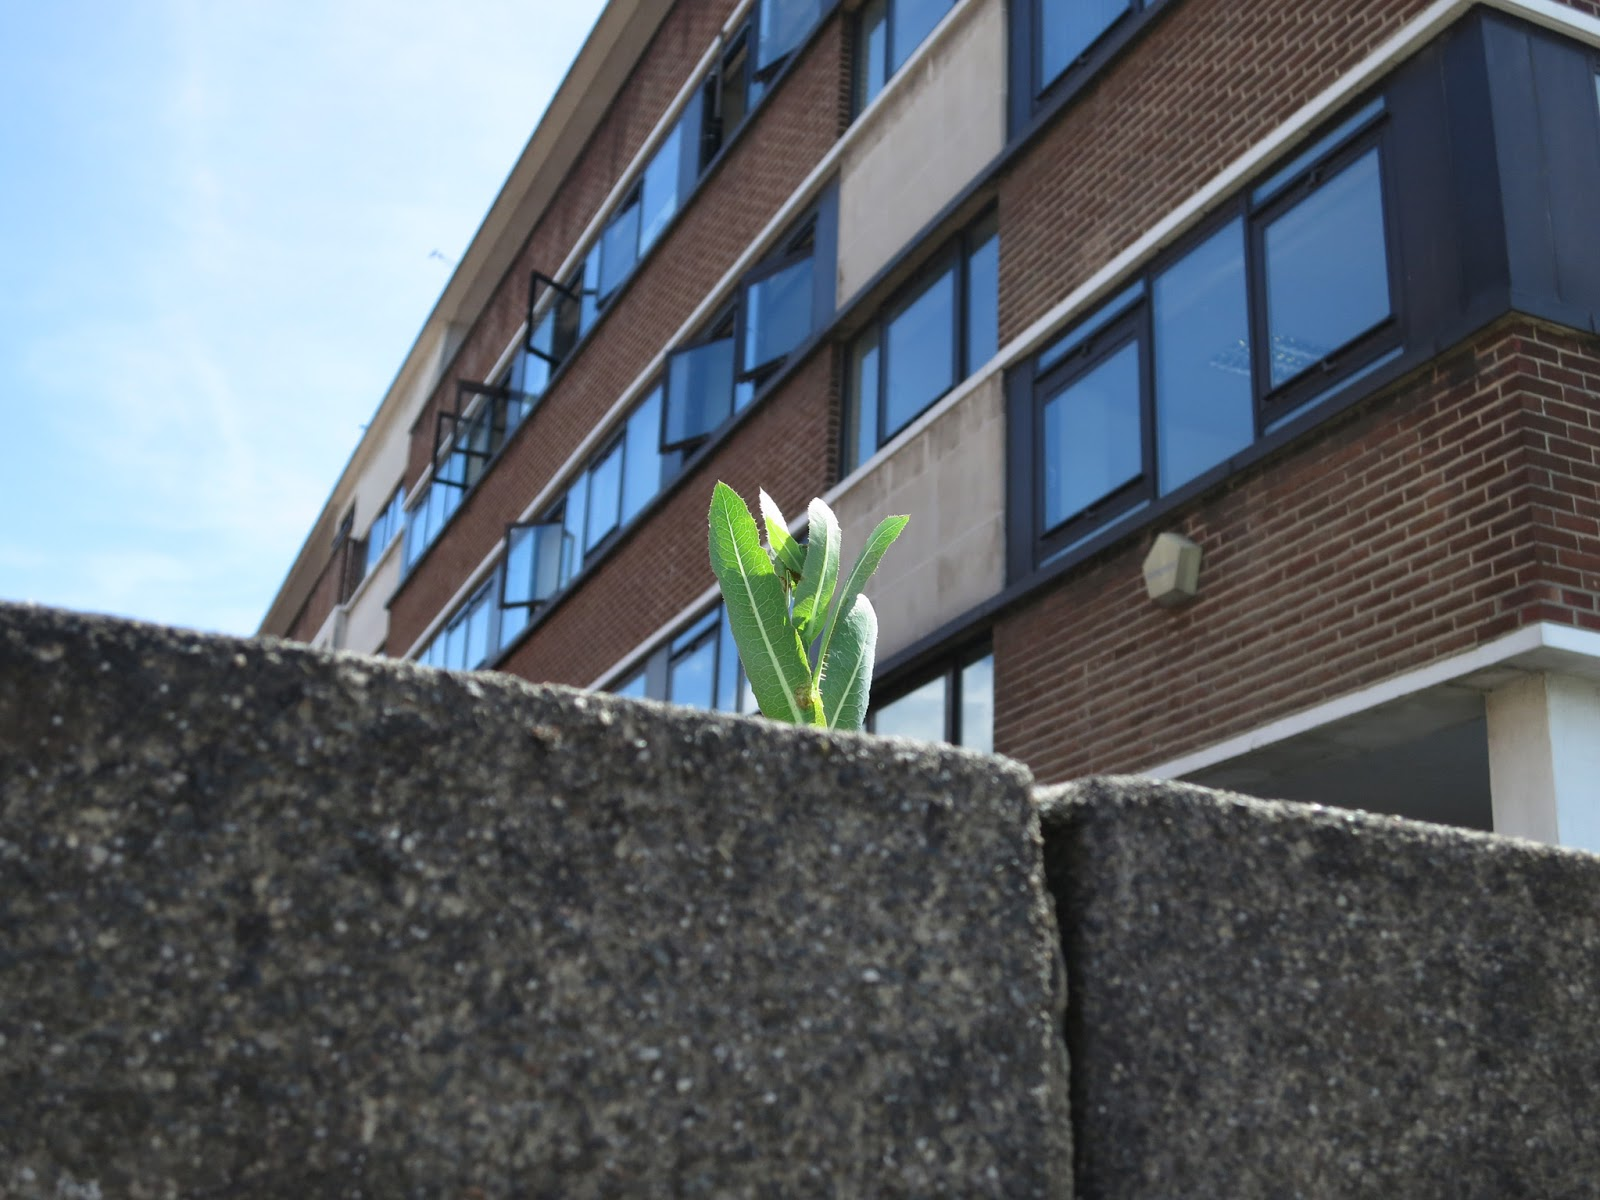 Prickly lettuce plant? (Lactuca serriola) rising from wall in front of offices with open windows.